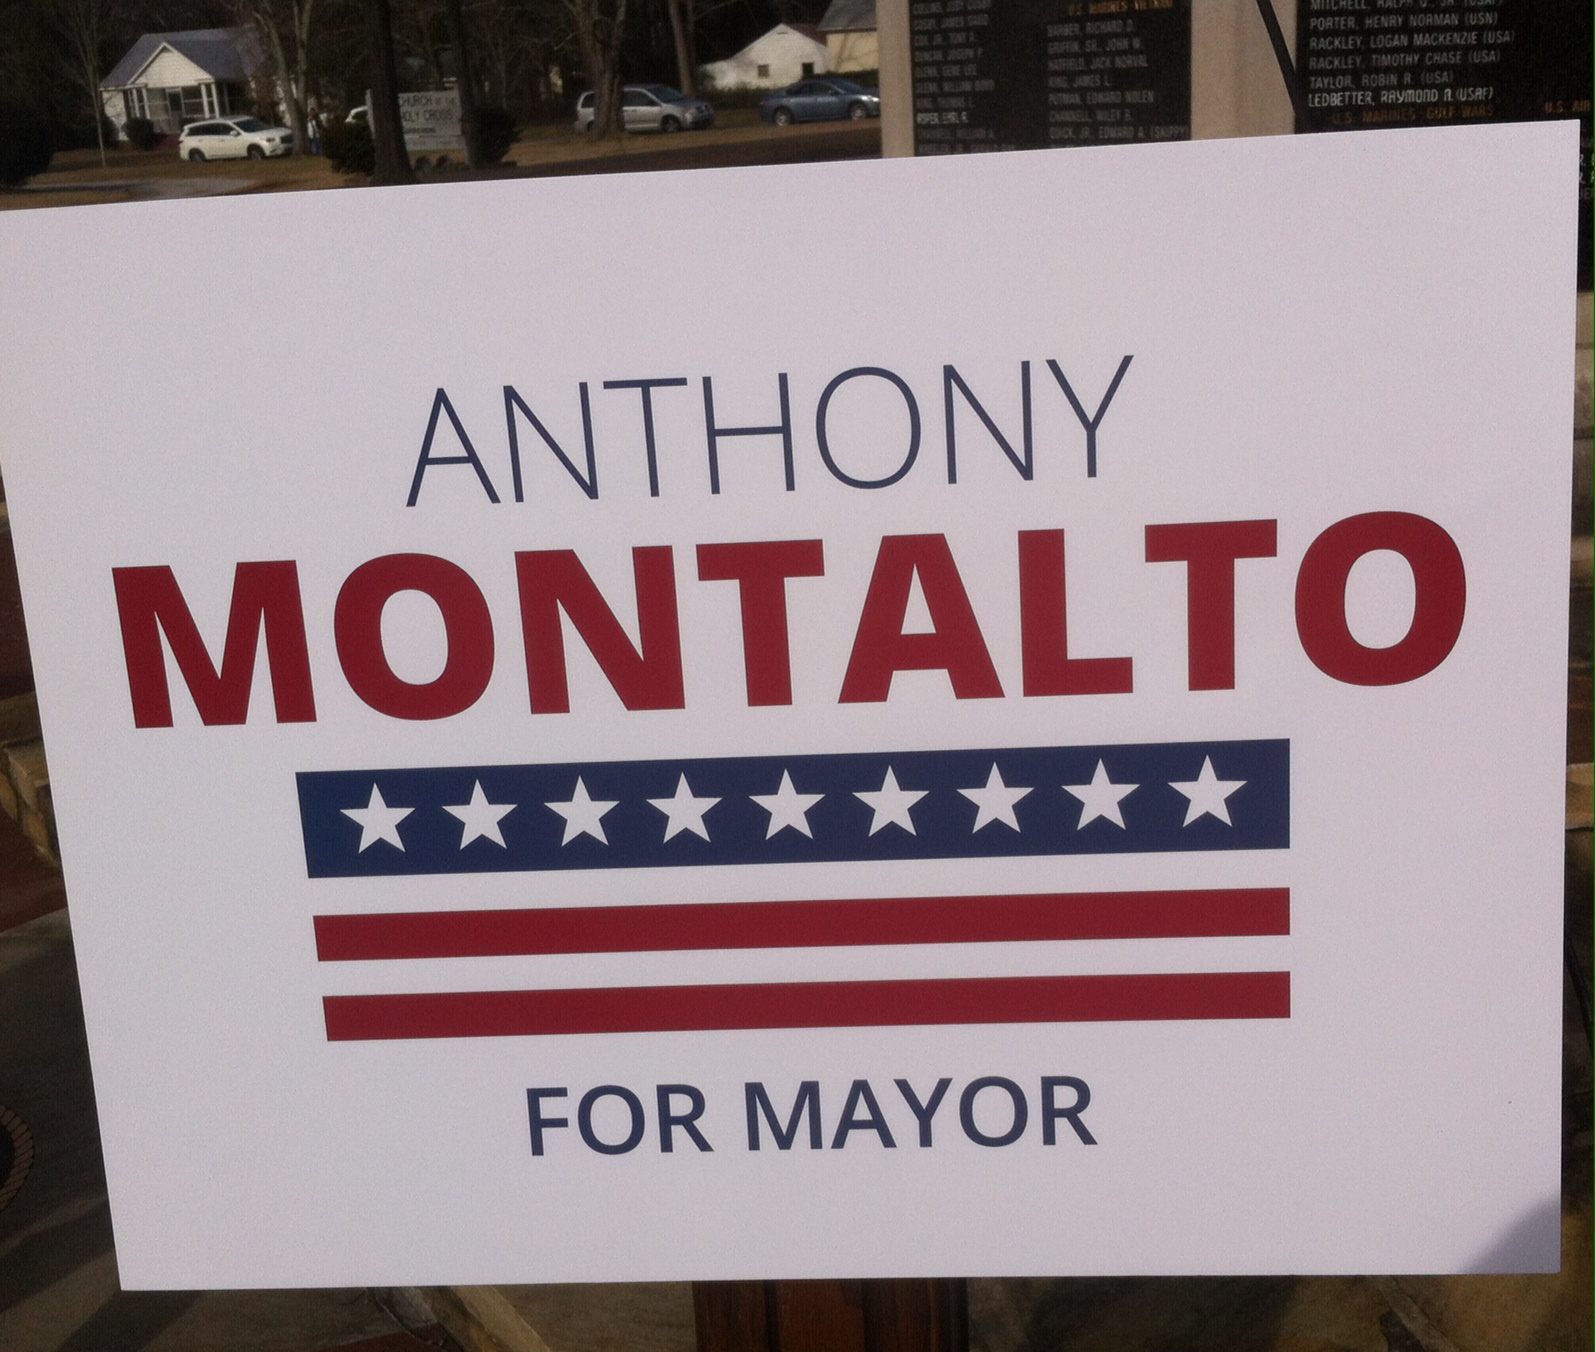 Montalto to run for Mayor of Trussville